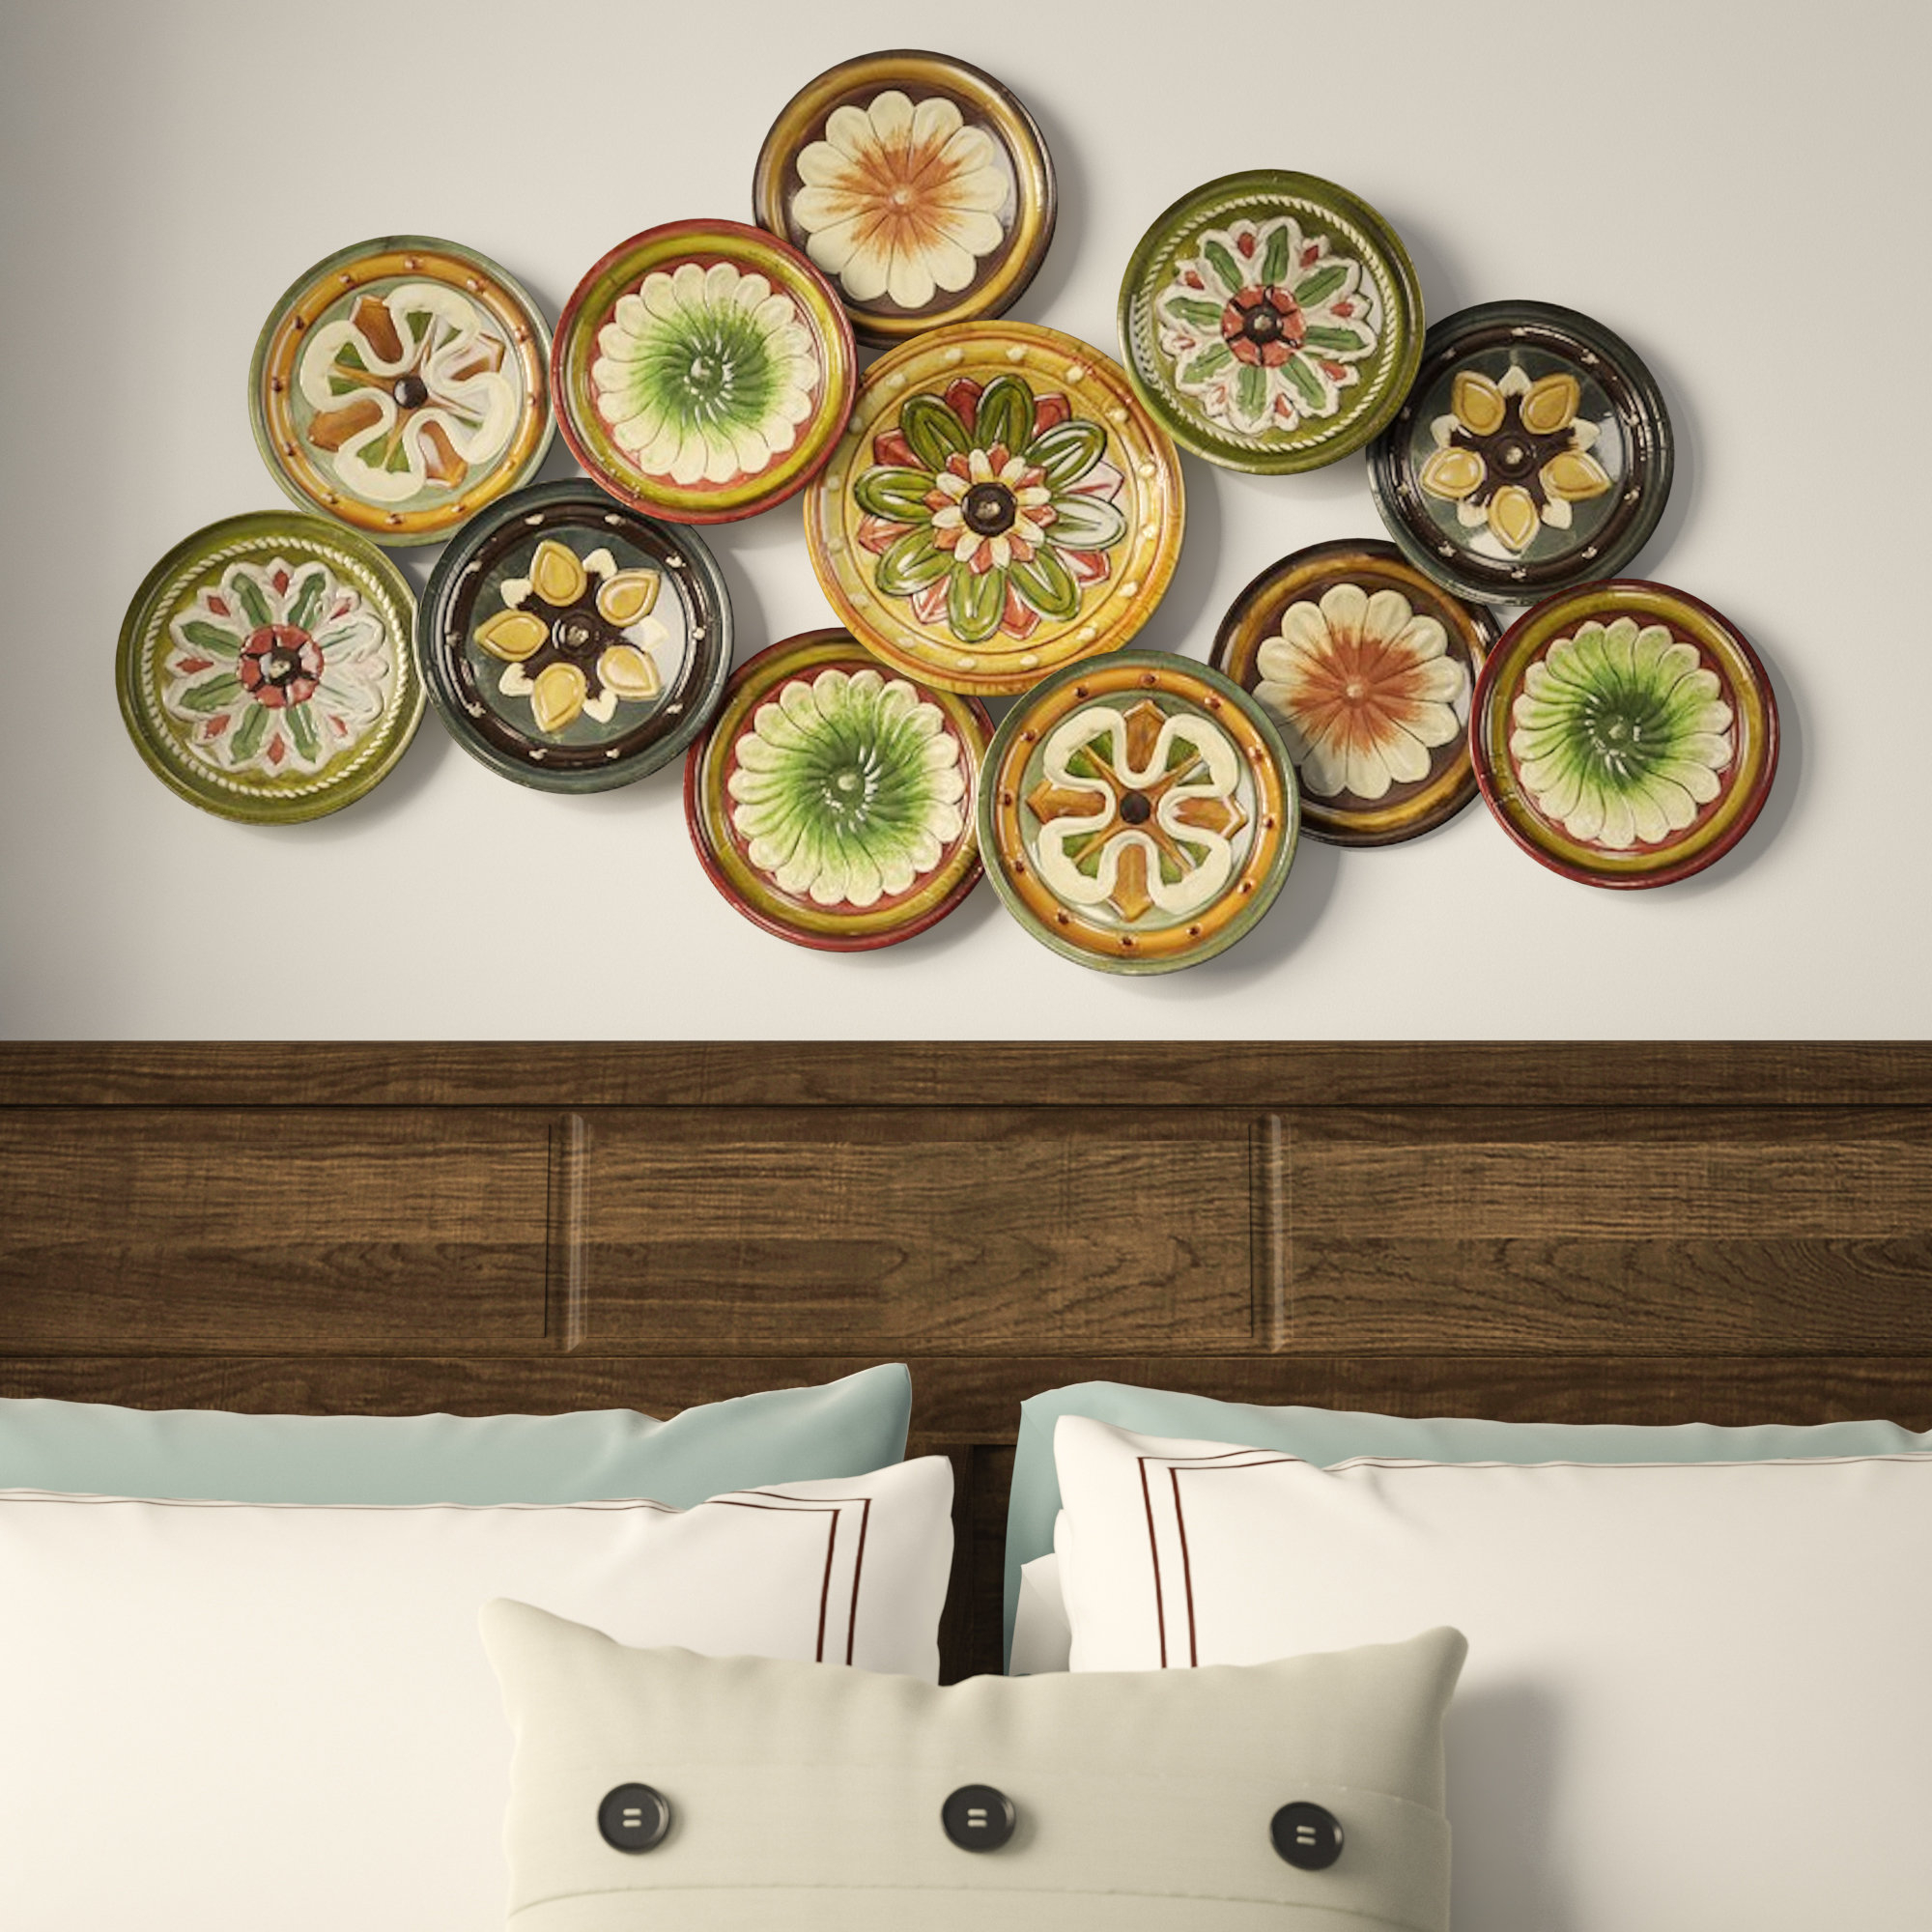 Charlton Home Metal Wall Décor regarding Scattered Metal Italian Plates Wall Decor (Image 5 of 30)